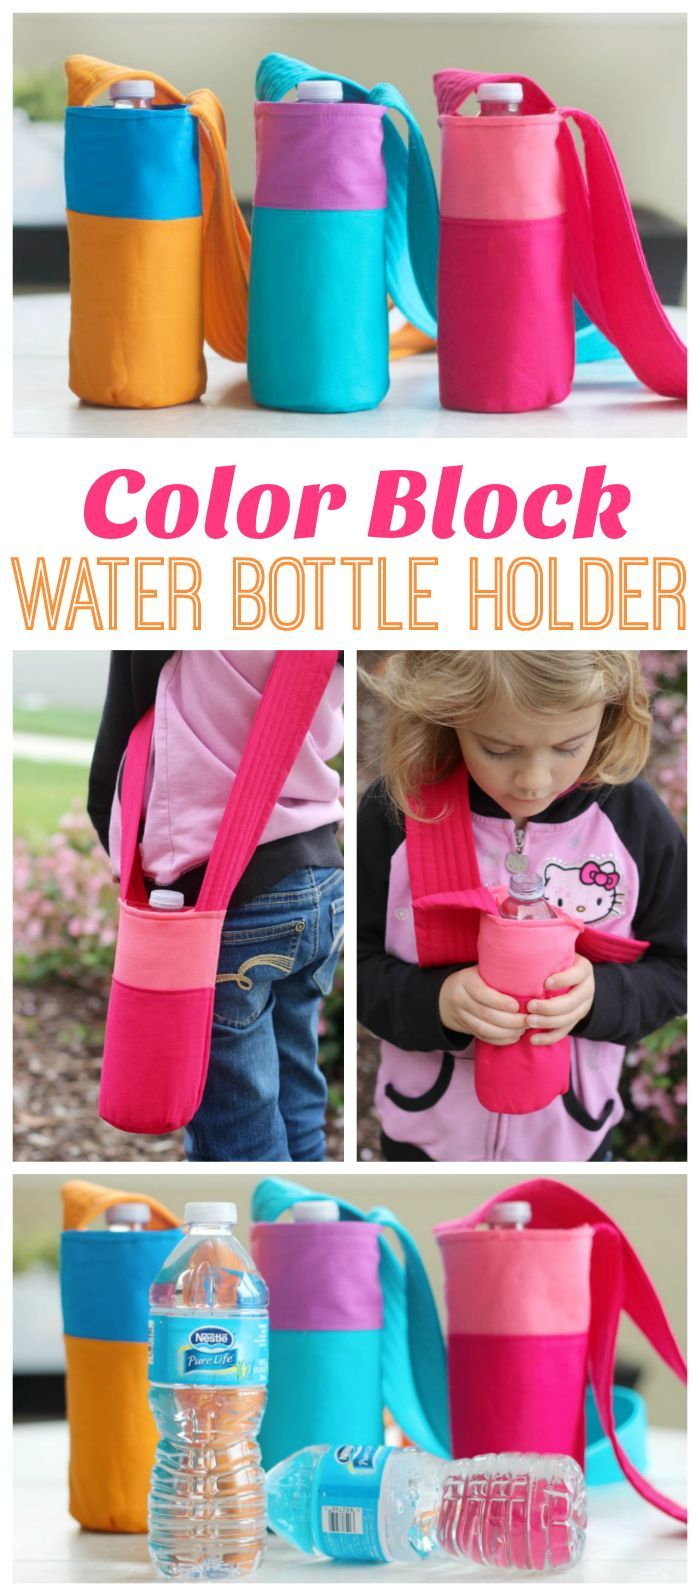 Color Block Water Bottle Holder Tutorial | Gluesticks